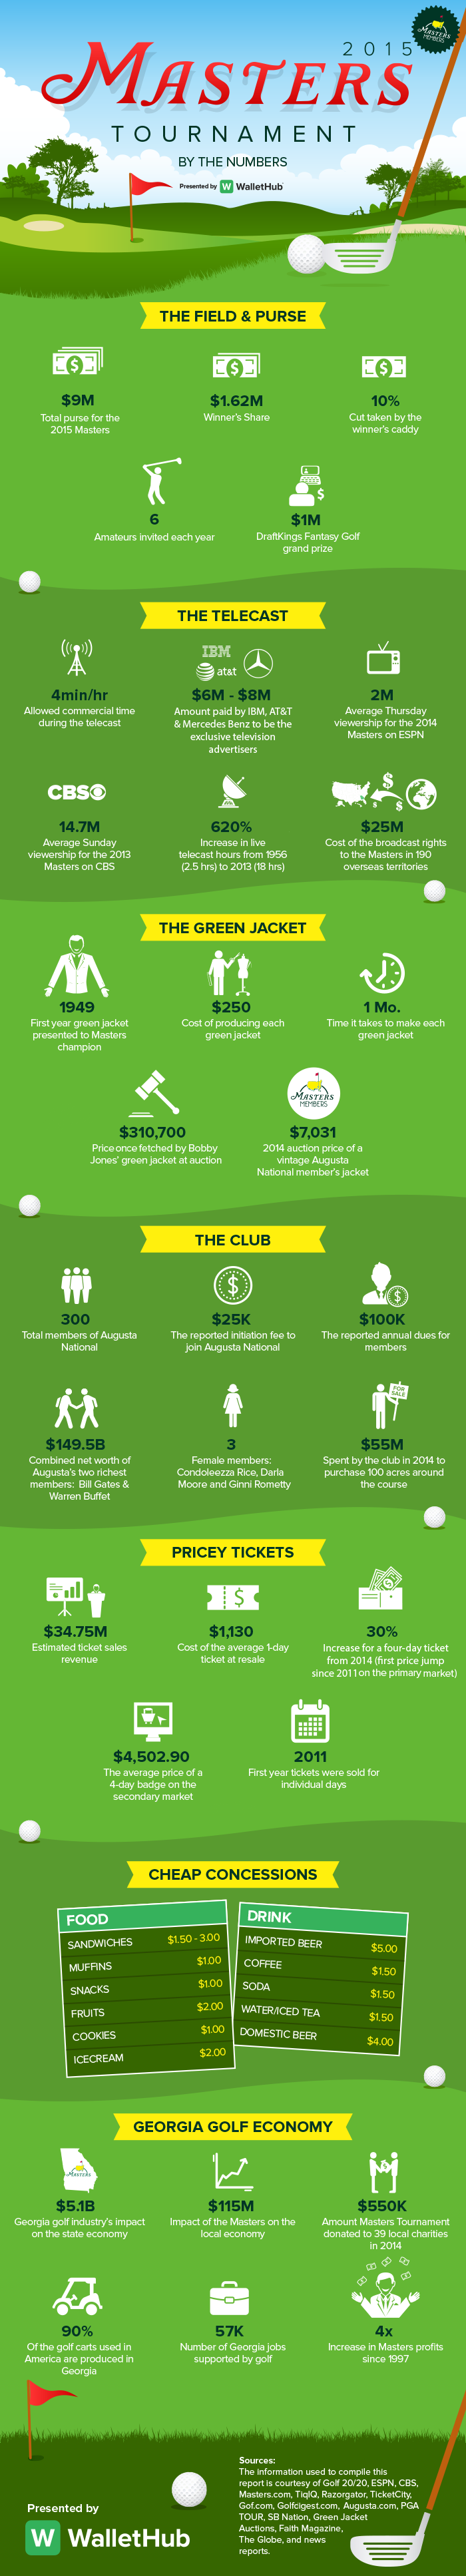 Masters-By-The-Numbers-7